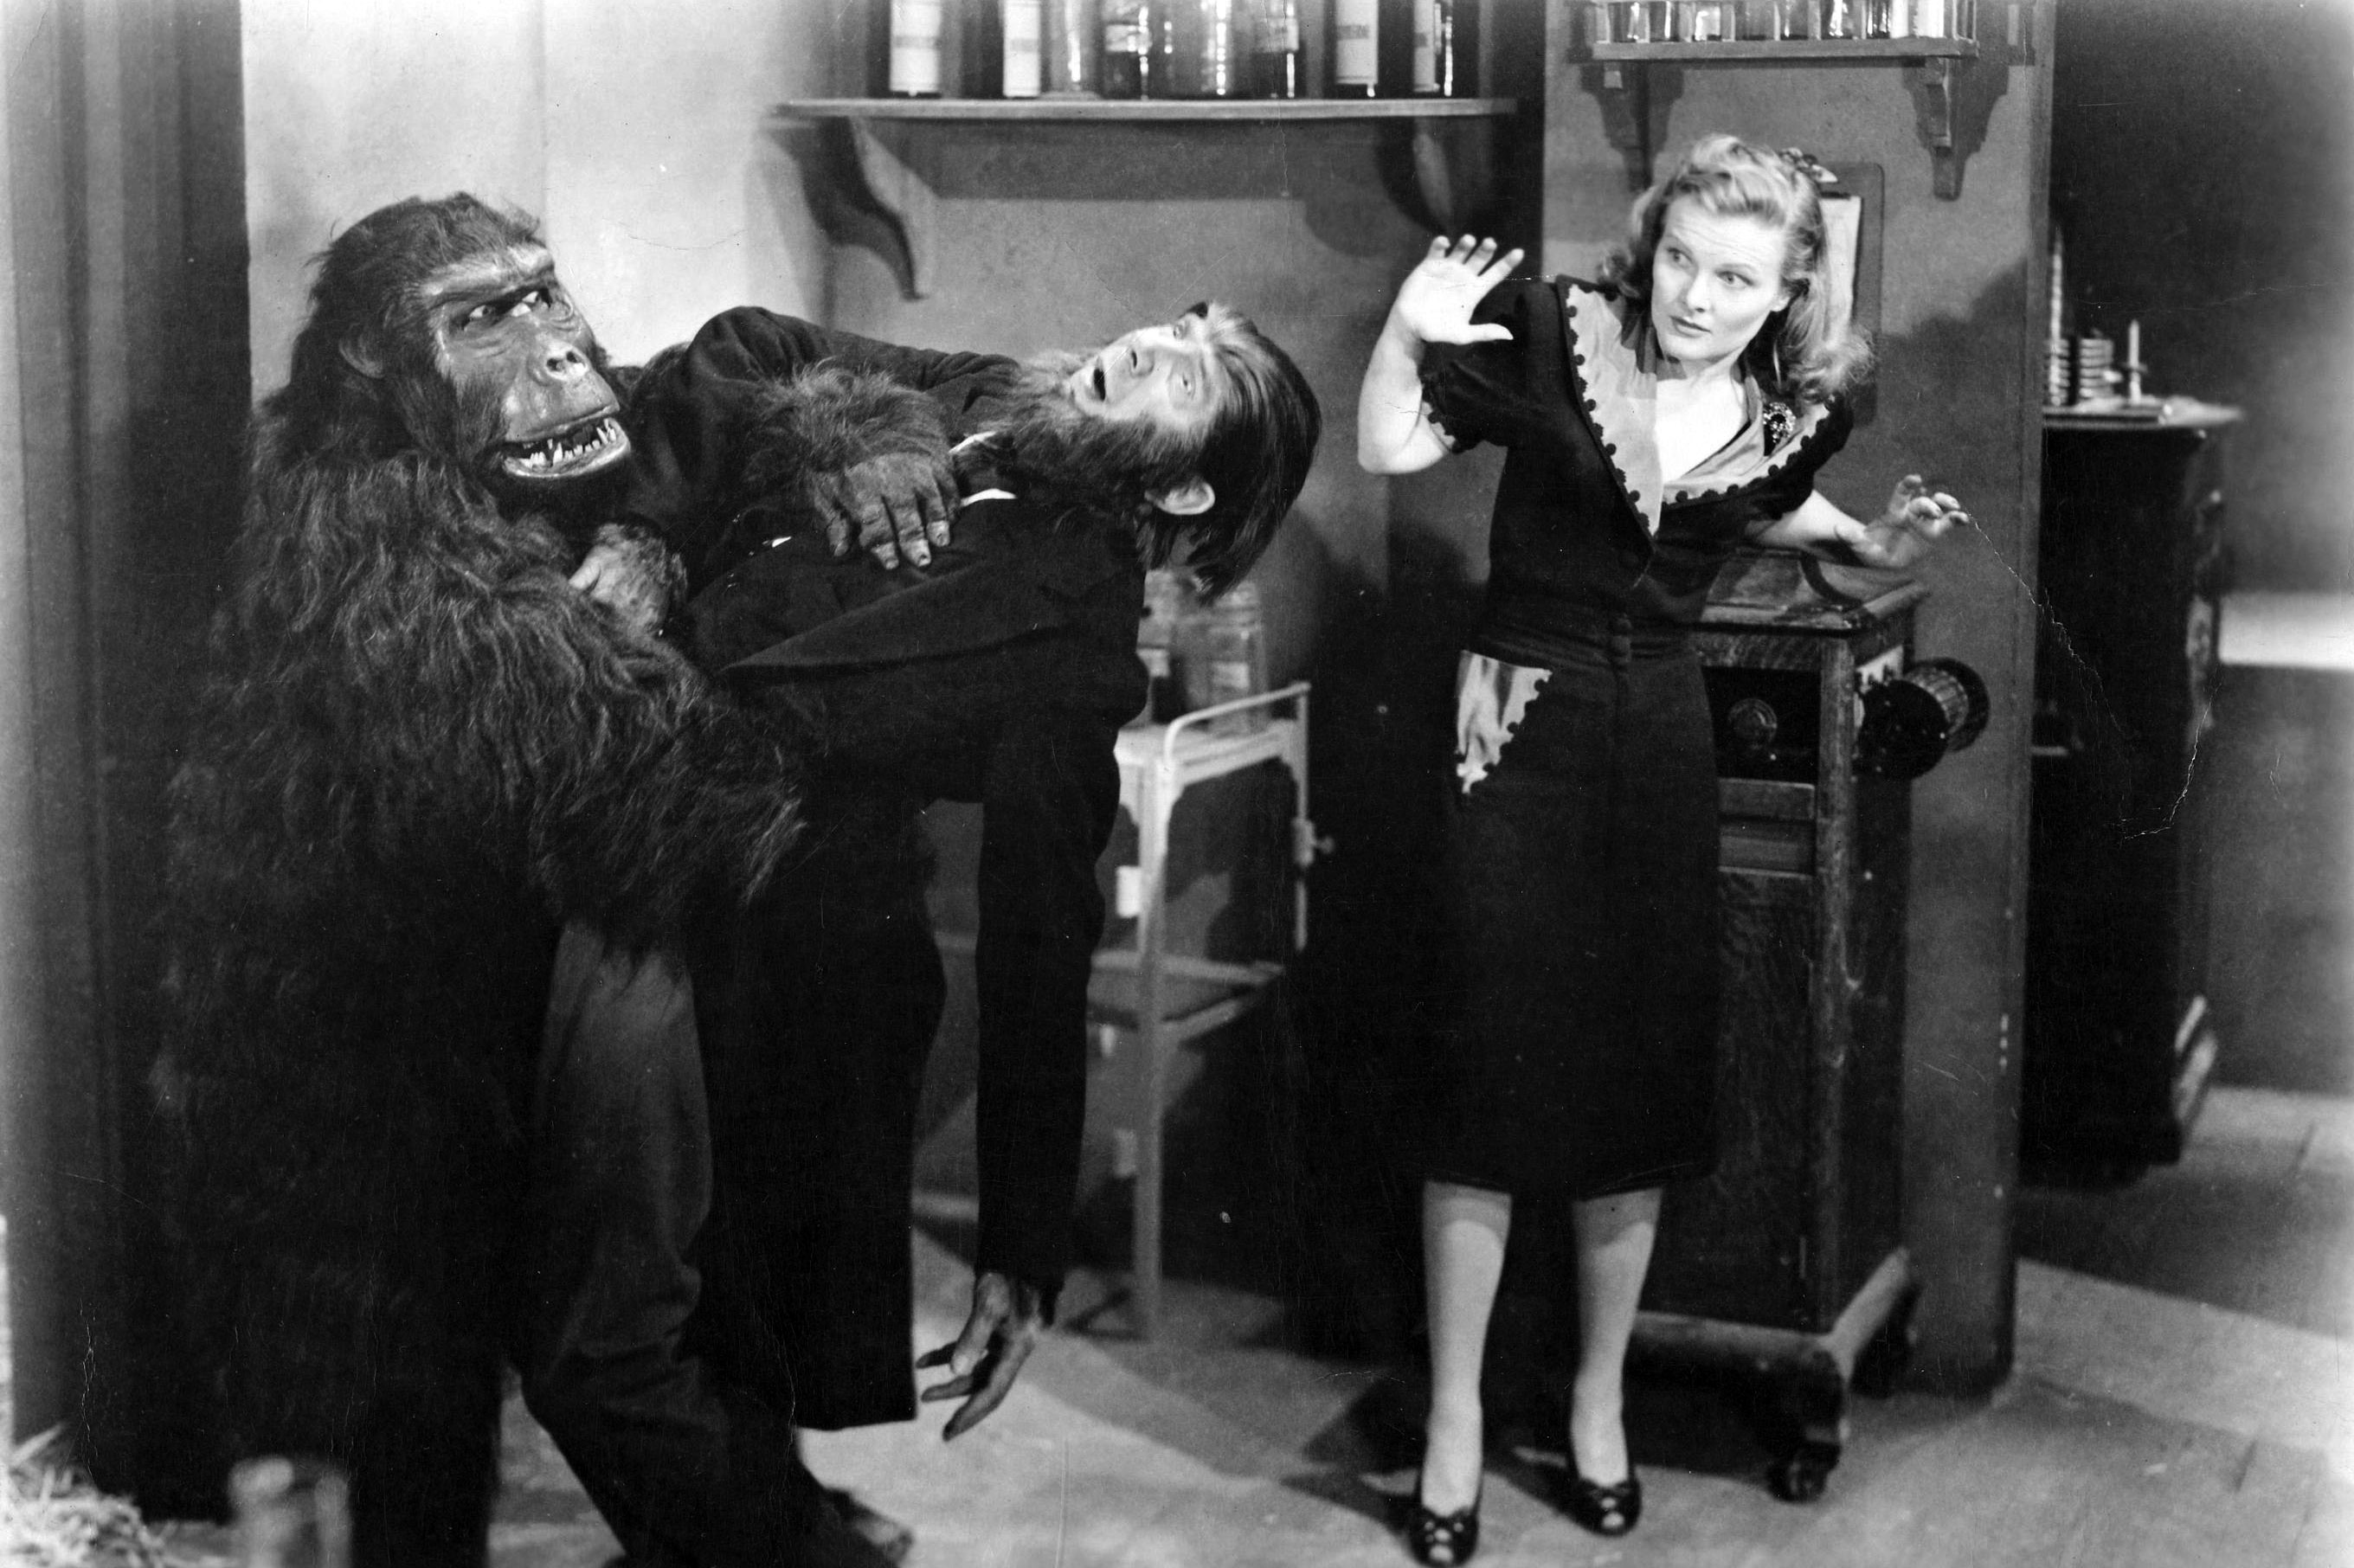 (l to r) The Ape (Emil Van Horn) attacks its master Bela Lugosi as Louise Currie looks on in The Ape Man (1943)